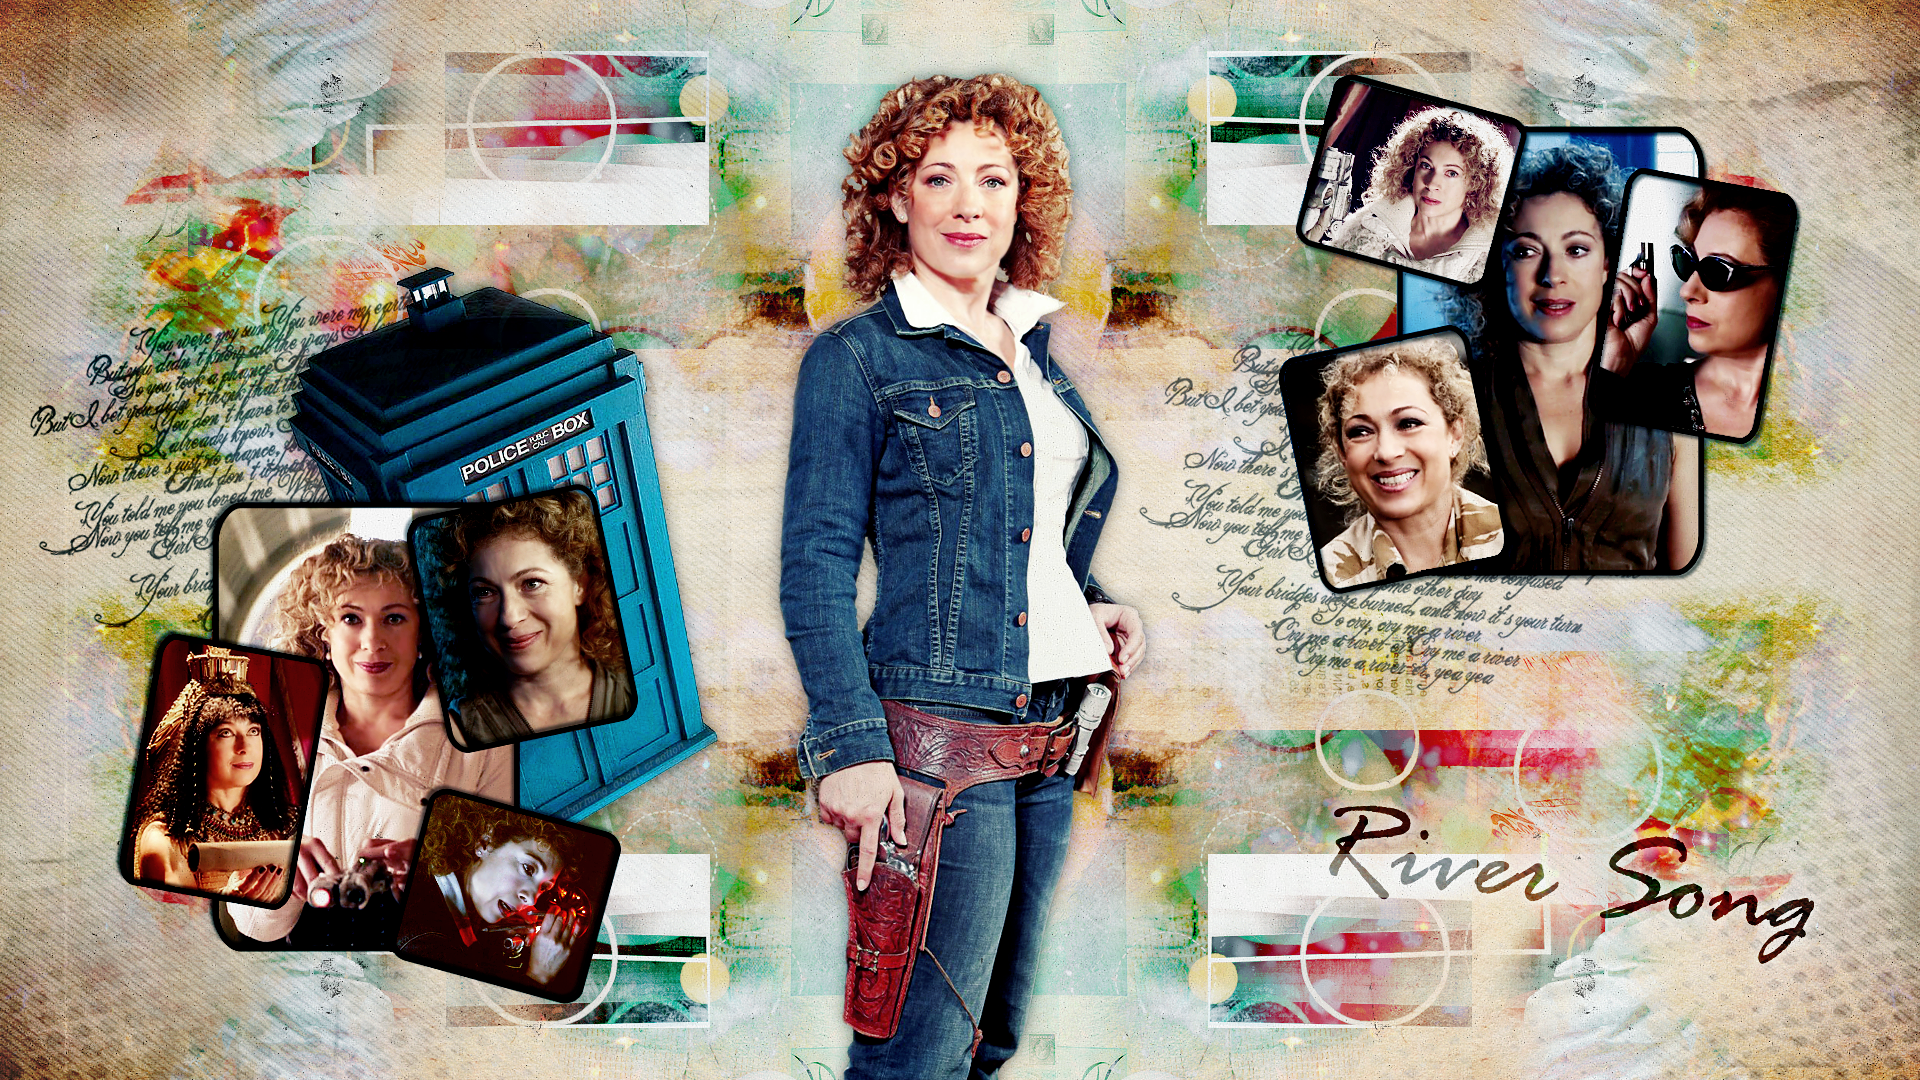 River Song wallpaper by charmingangel22 1920x1080